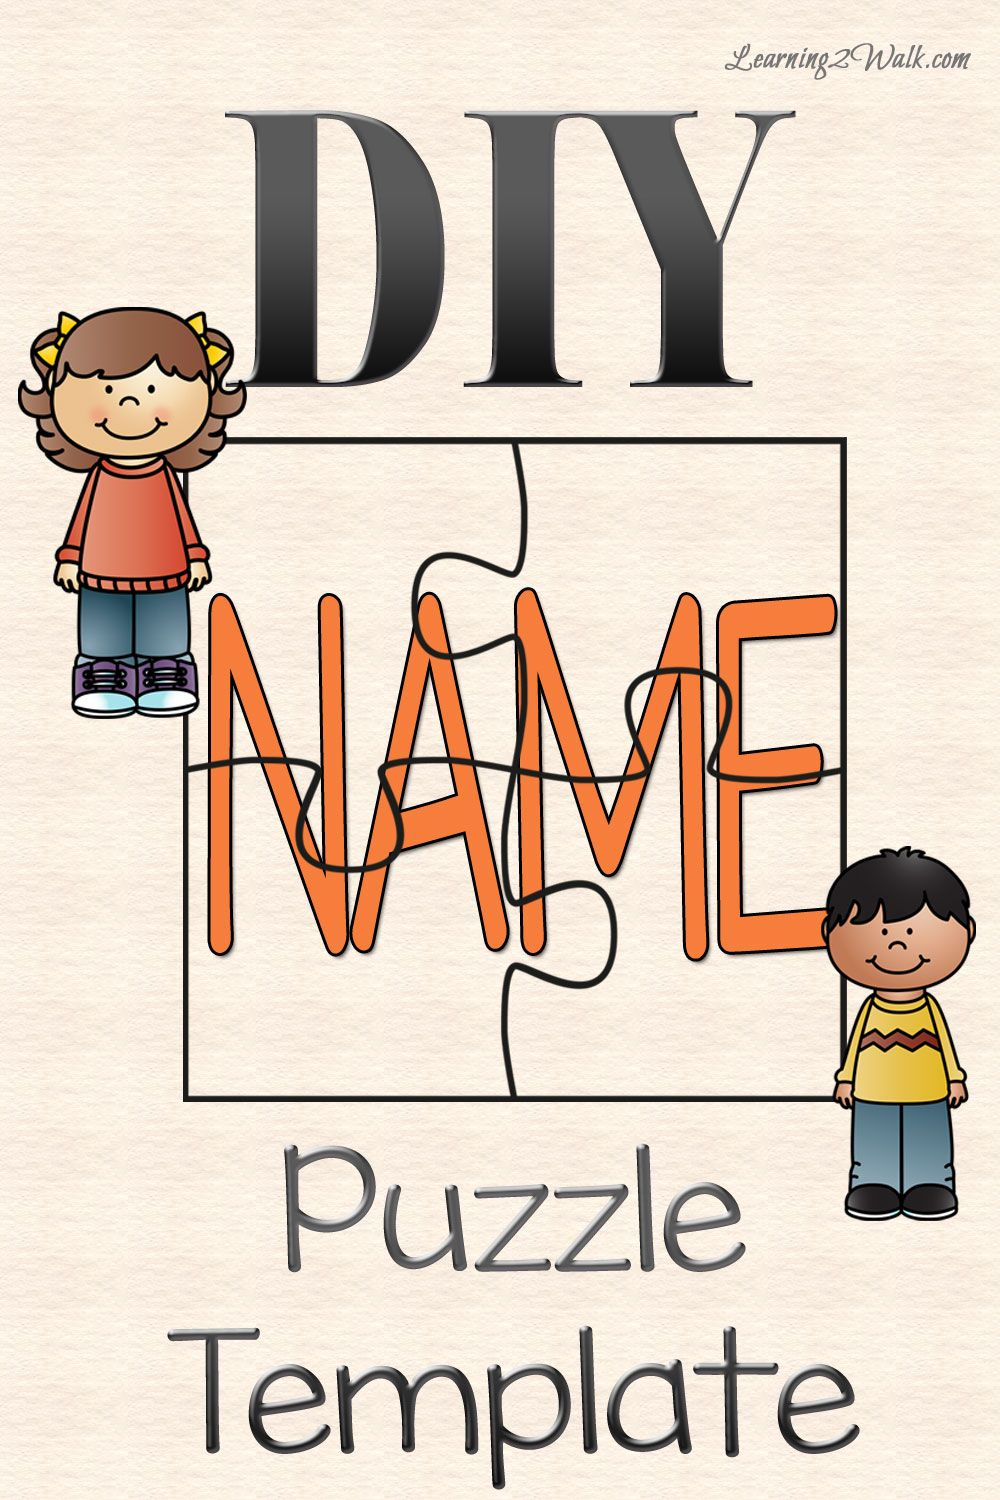 Diy Name Puzzle Template | Preschool | Name Puzzle, Preschool - Printable Name Puzzles For Preschoolers